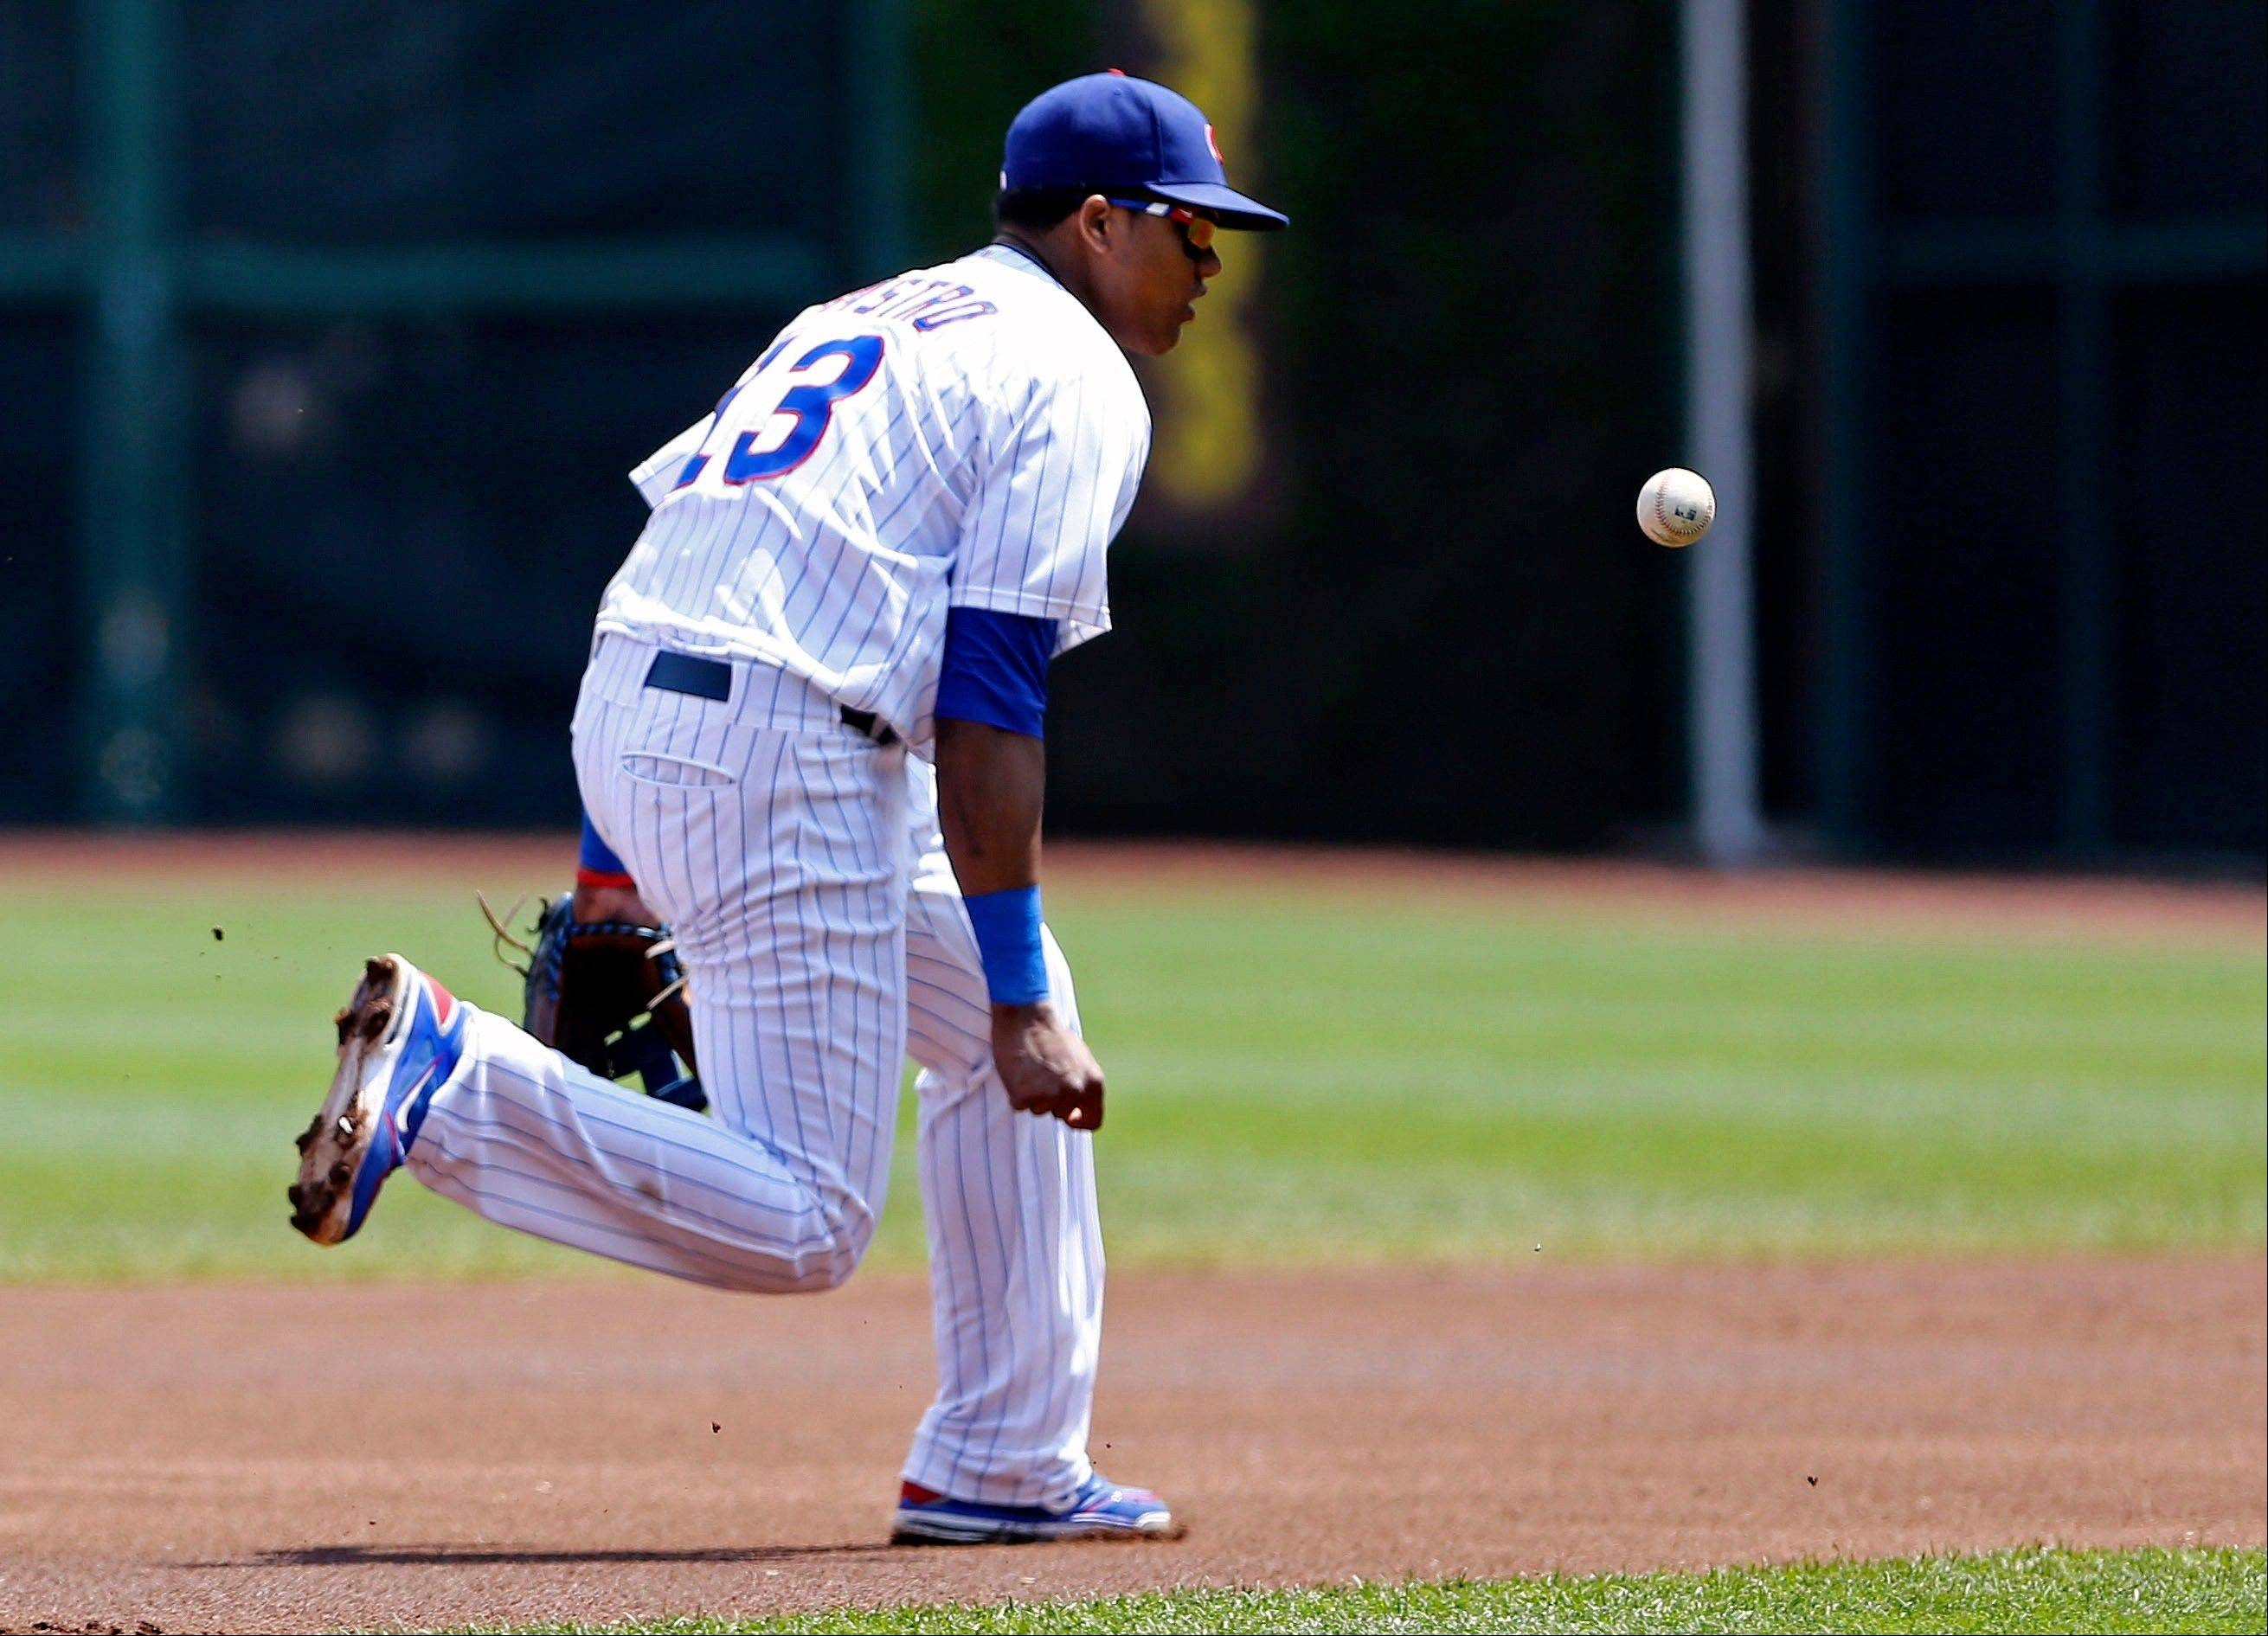 Cubs shortstop Starlin Castro can�t handle a hit by the Mets� Daniel Murphy during the first inning of Saturday�s game at Wrigley Field.